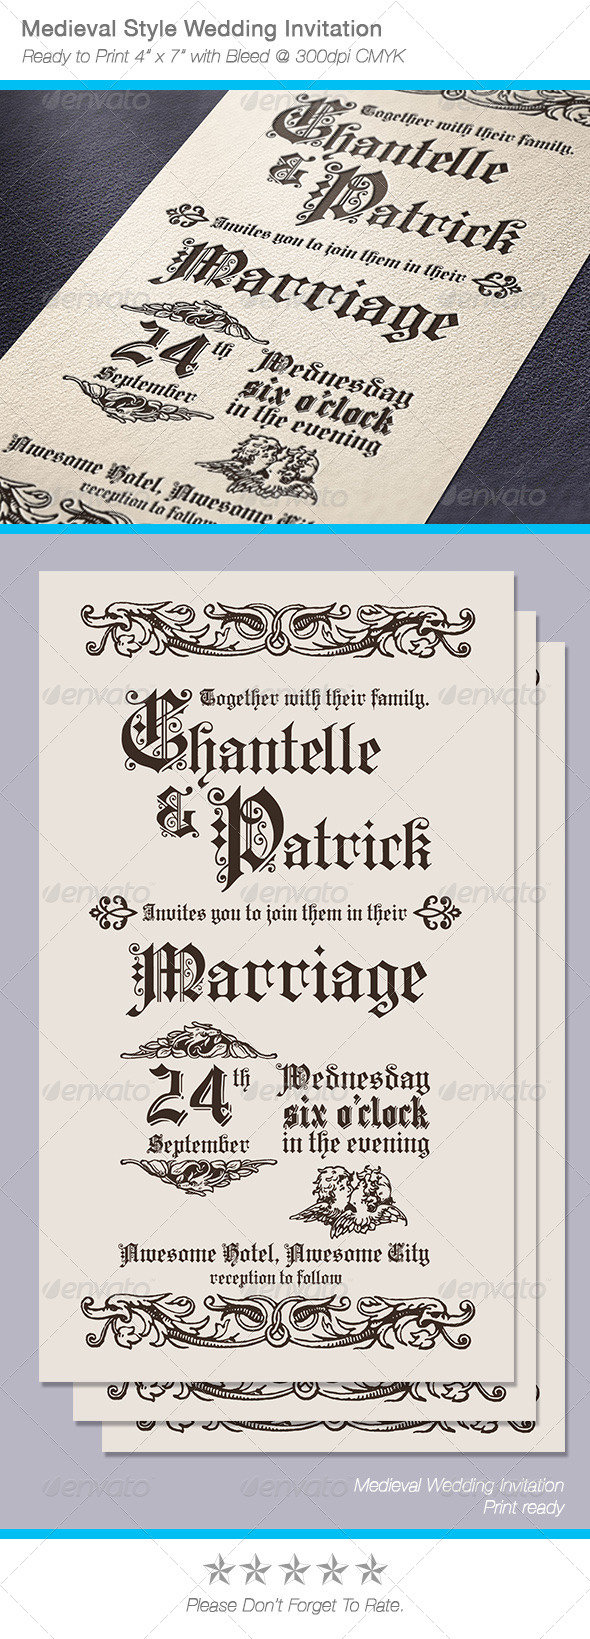 Medieval Style Wedding Invitation - Weddings Cards & Invites